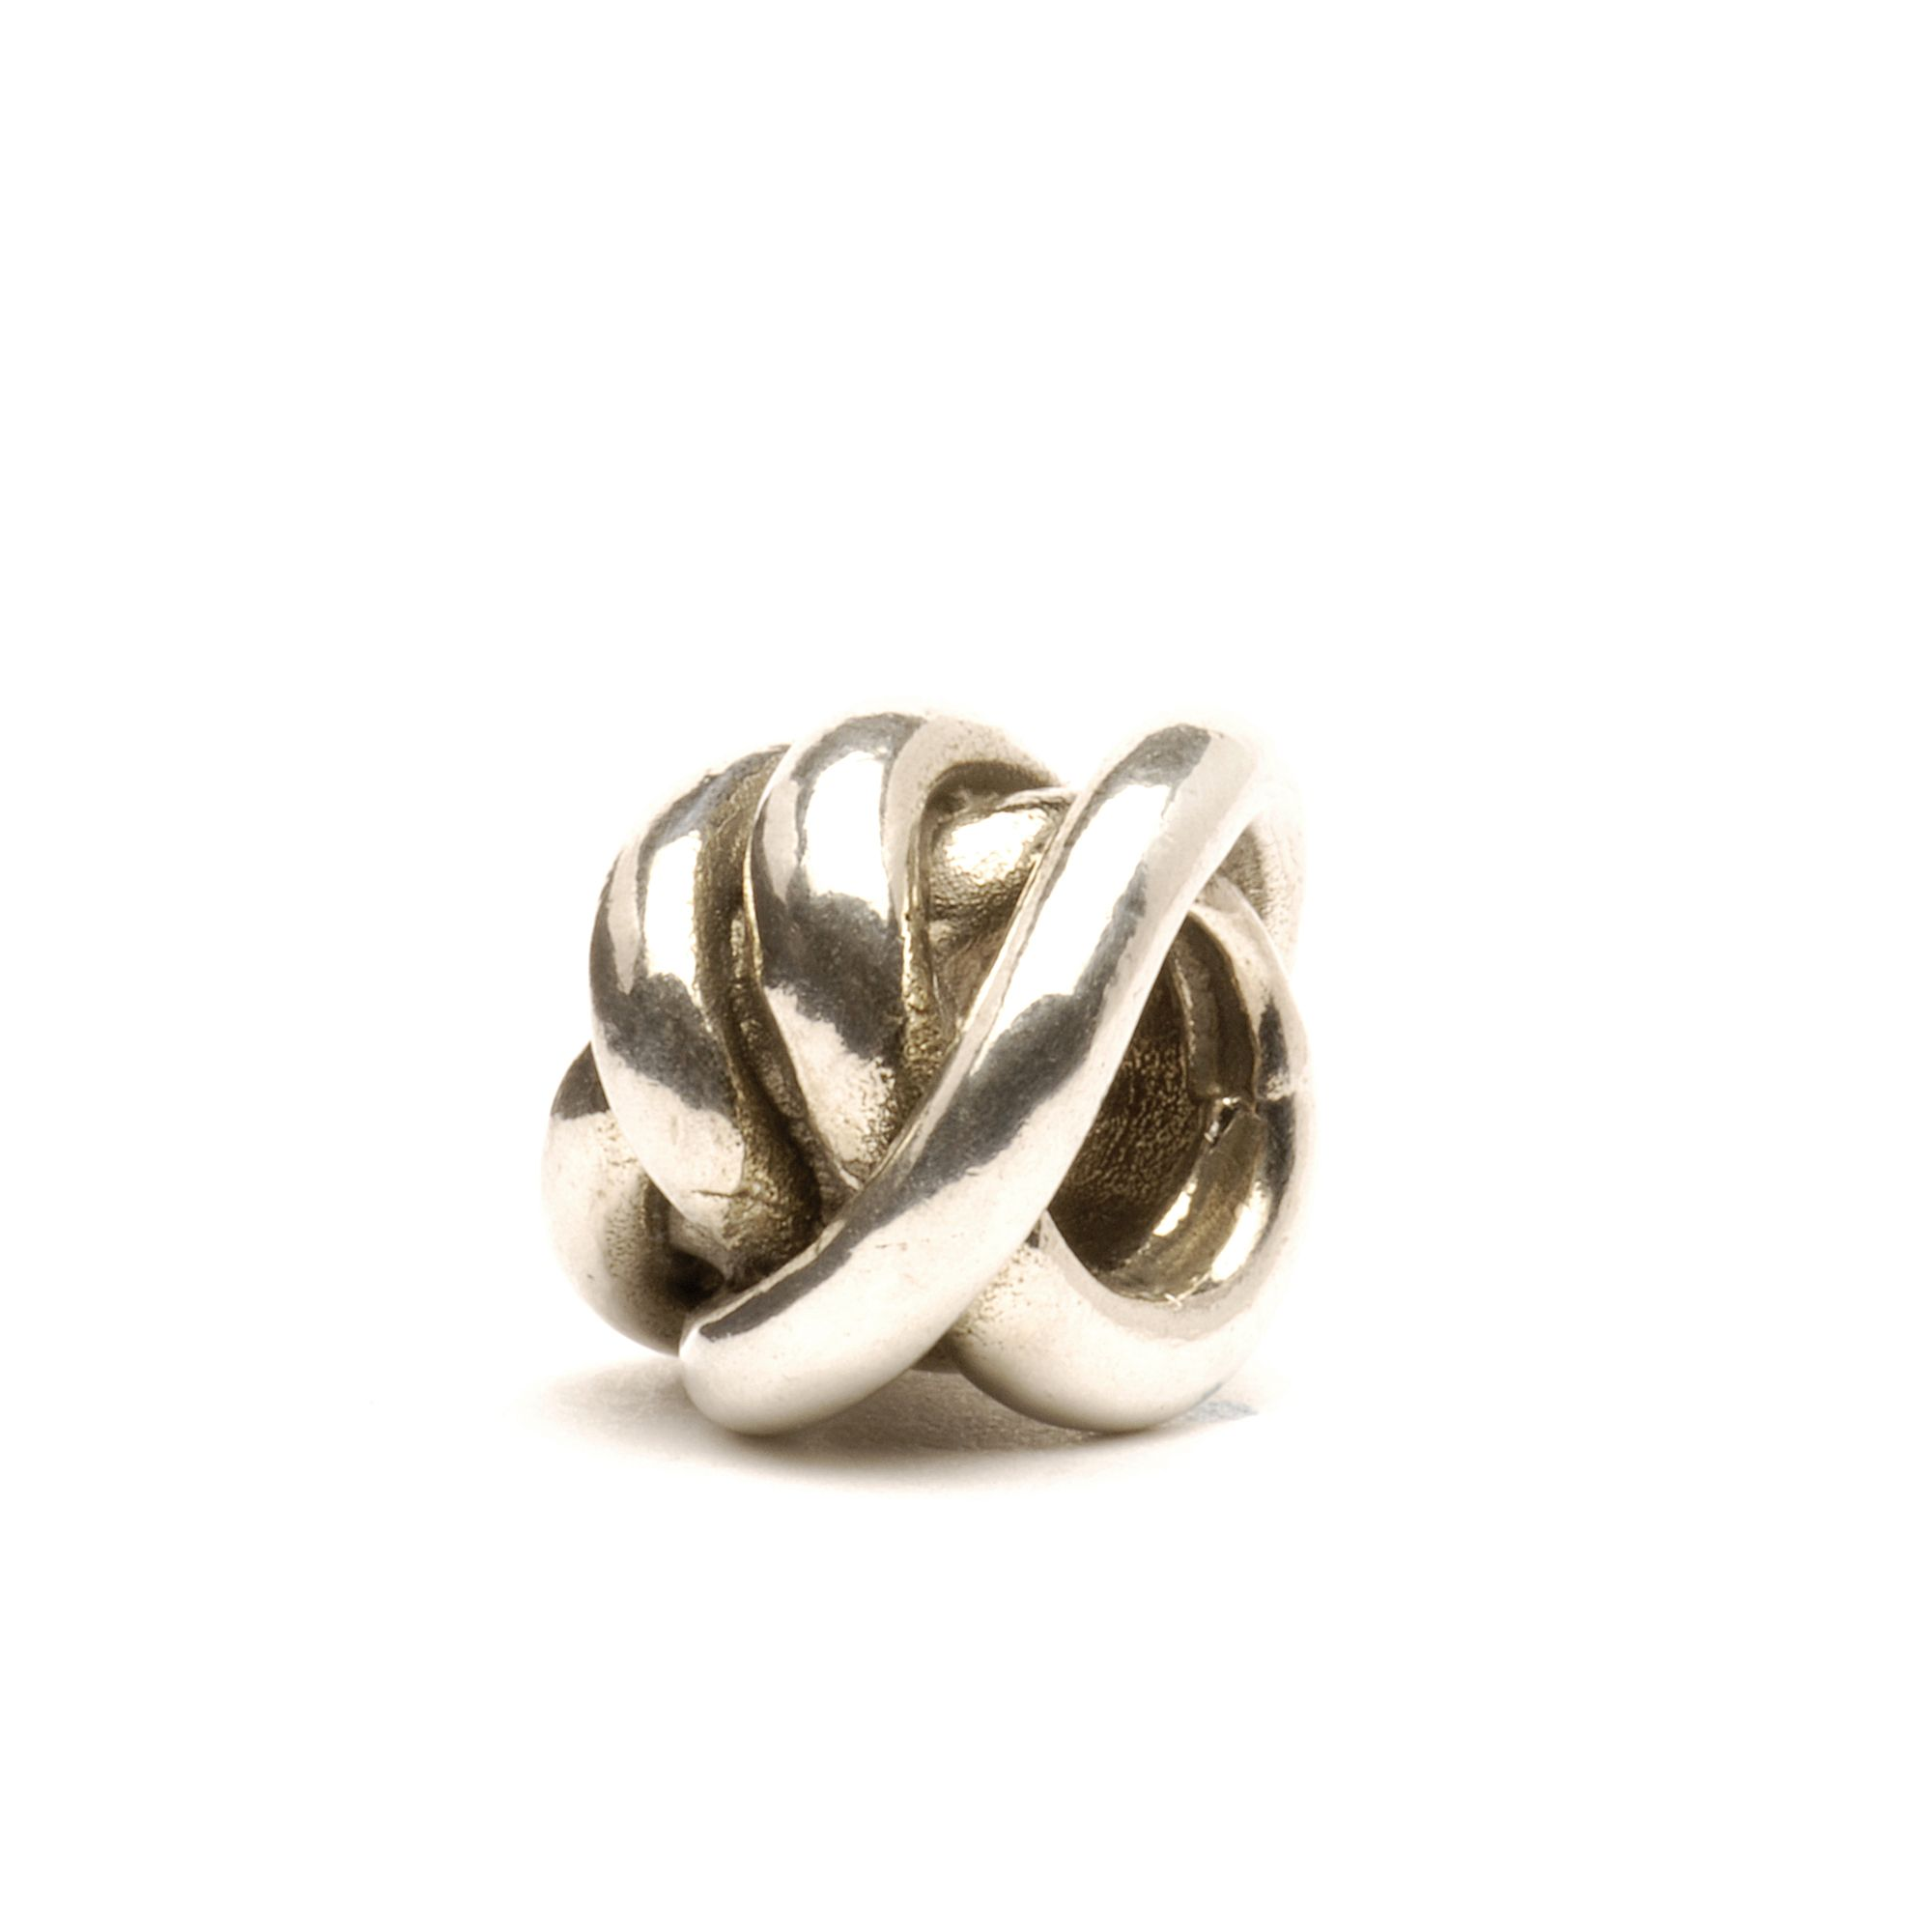 Lucky Knot silver charm bead